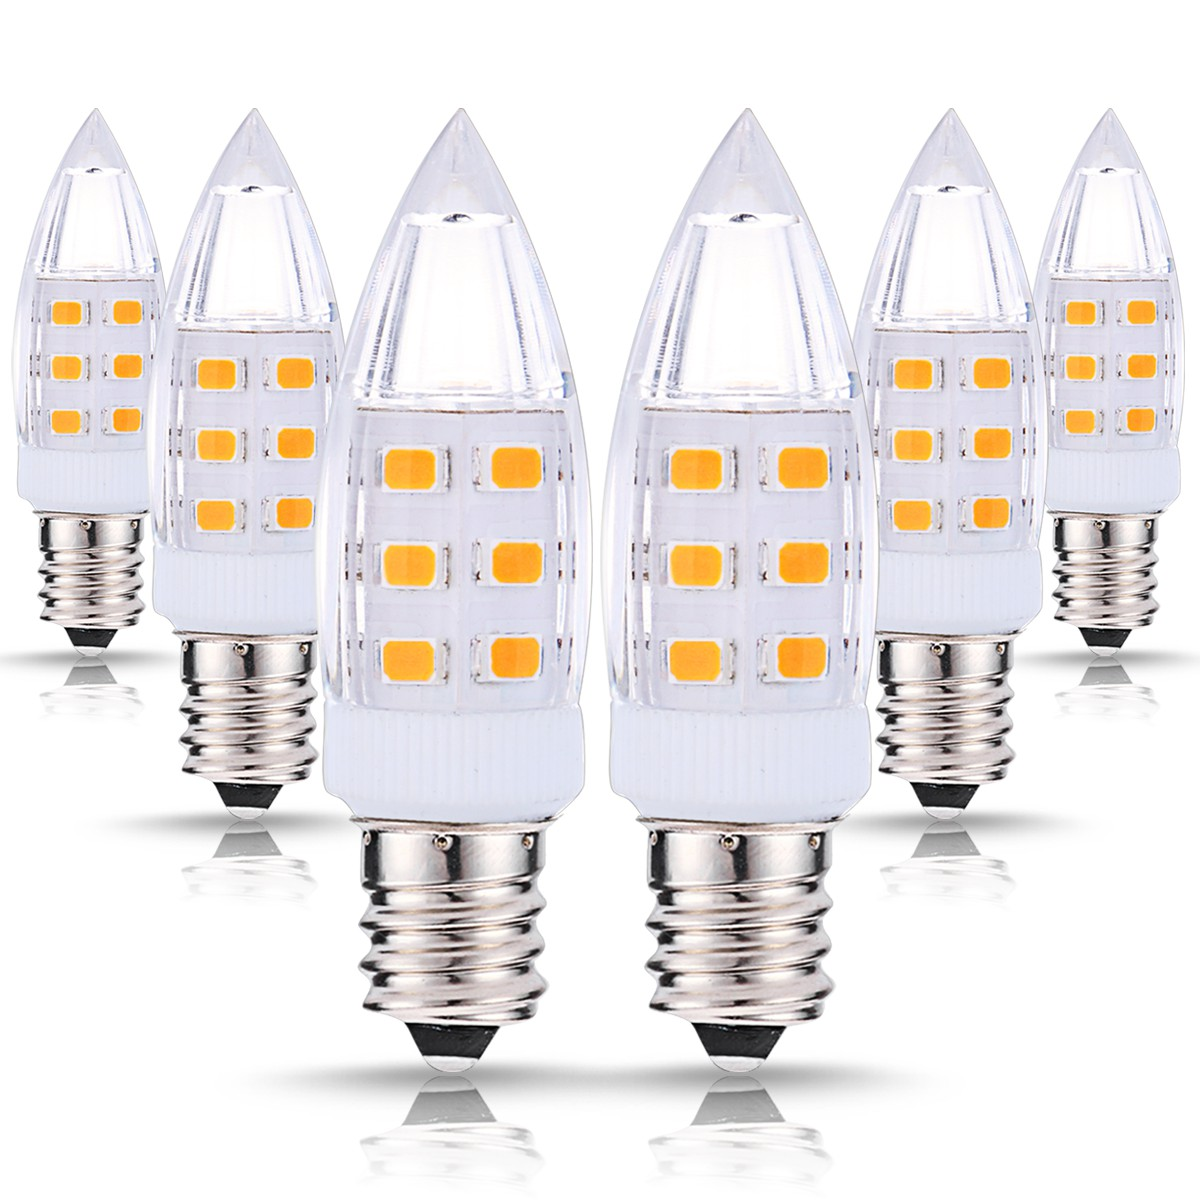 LOHAS LED Night Light Bulbs, C7 Candelabra Bulb, 2.5W( 25W Equivalent), 200LM, Natural Daylight White 4000K, E12 Base LED Bulbs for Bedroom, Hallway, Candle Light, Not Dimmable, 6 Pack